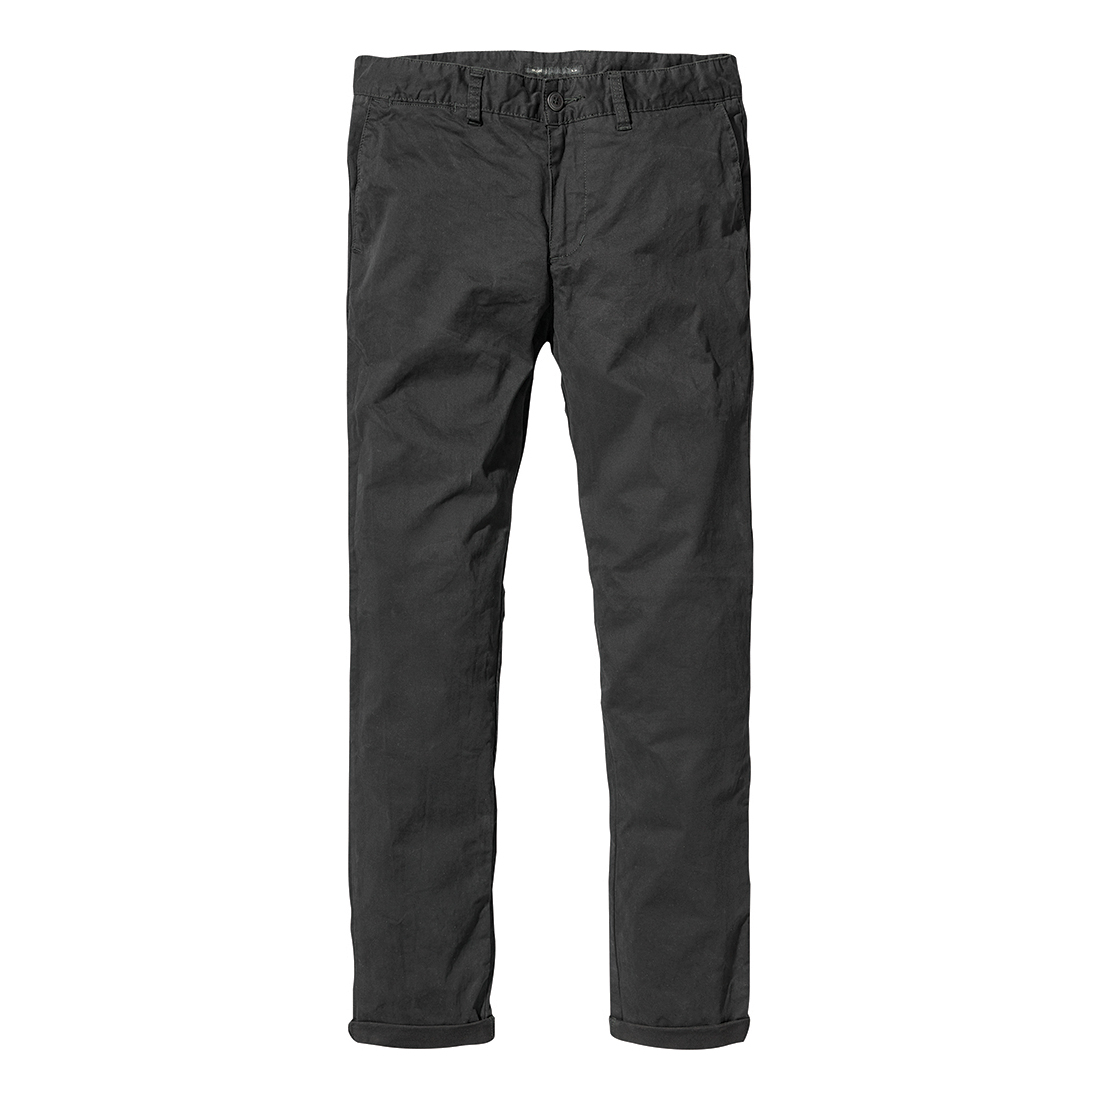 GLOBE Goodstock Mens Chino Pants